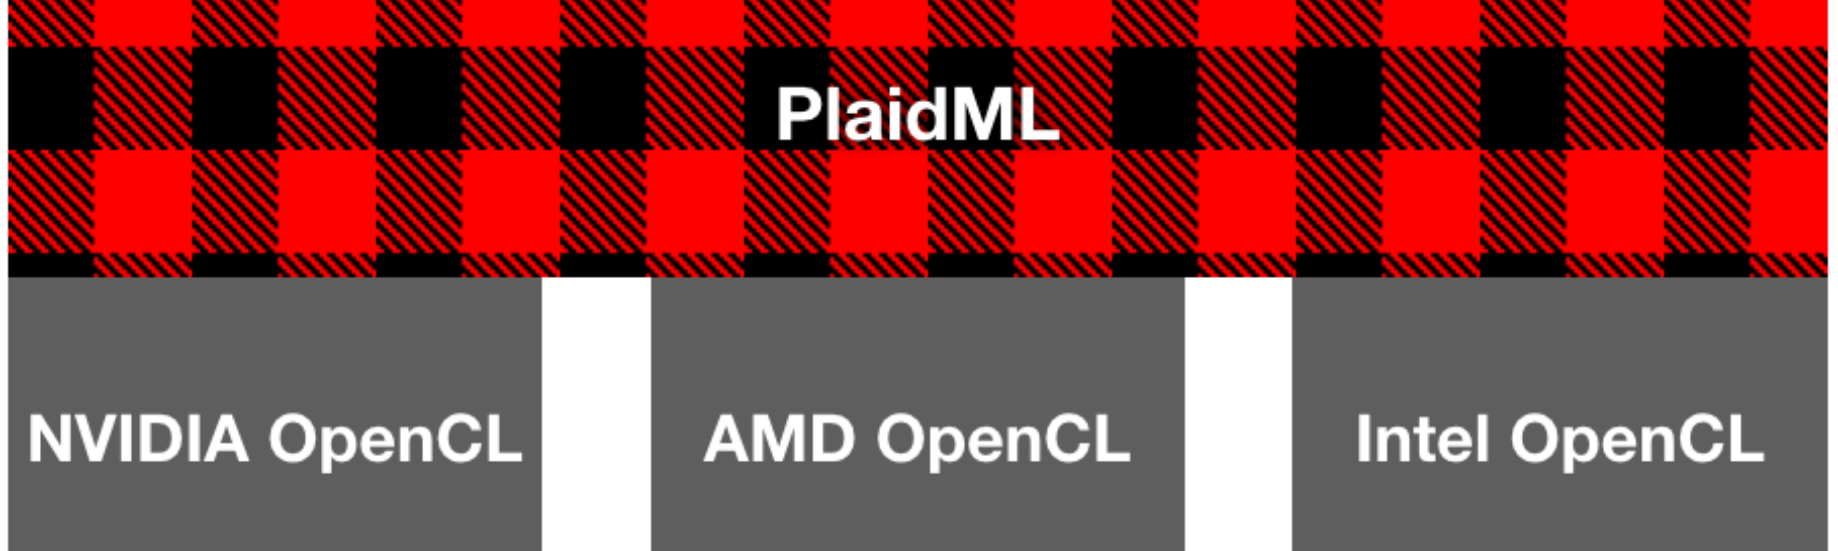 Evaluating PlaidML and GPU Support for Deep Learning on a Windows 10